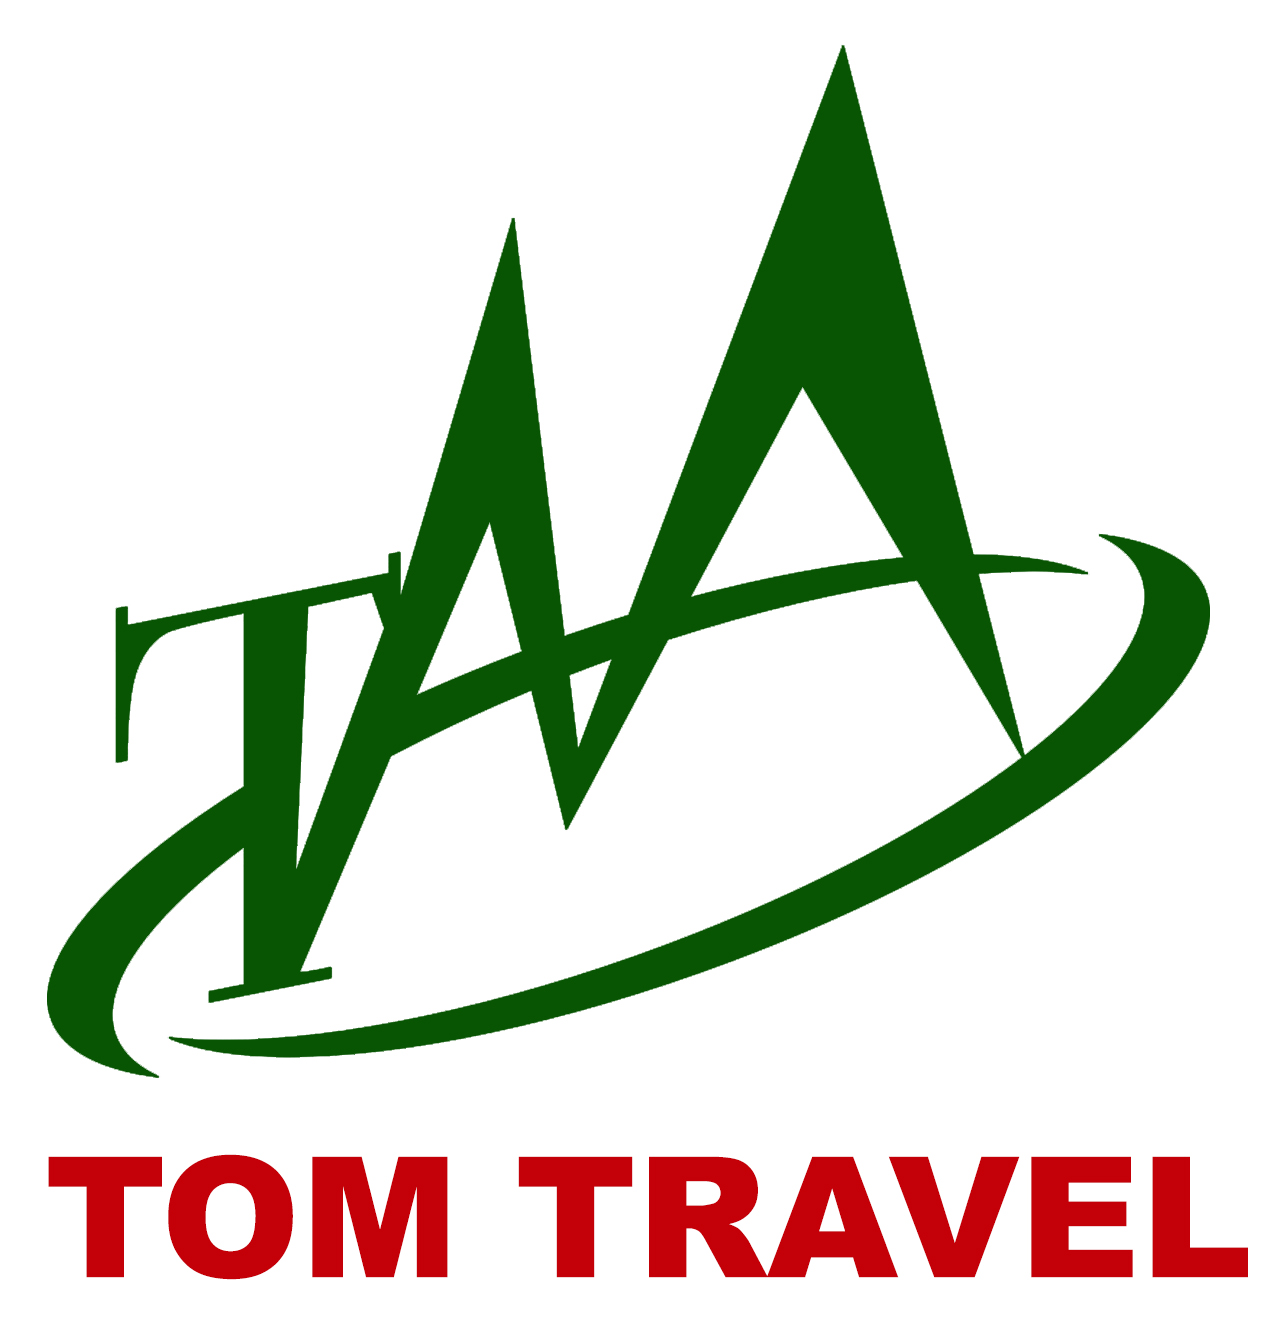 TOM TRAVEL - Trails Of Mountain Travel CO.,LTD